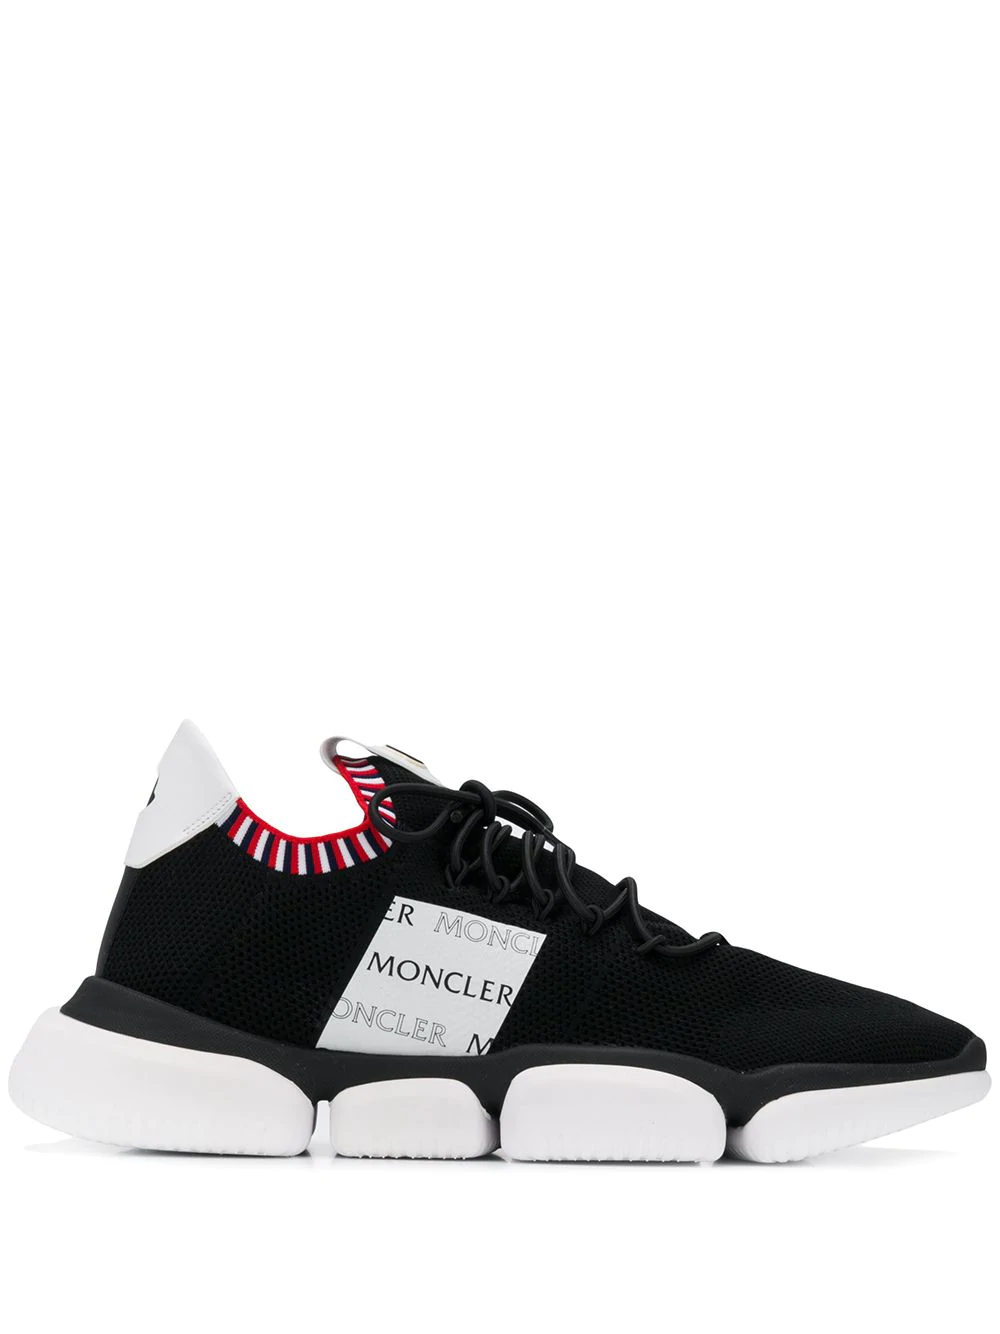 27248f3f3 Moncler Low Top Sock Trainers - Black | ModeSens